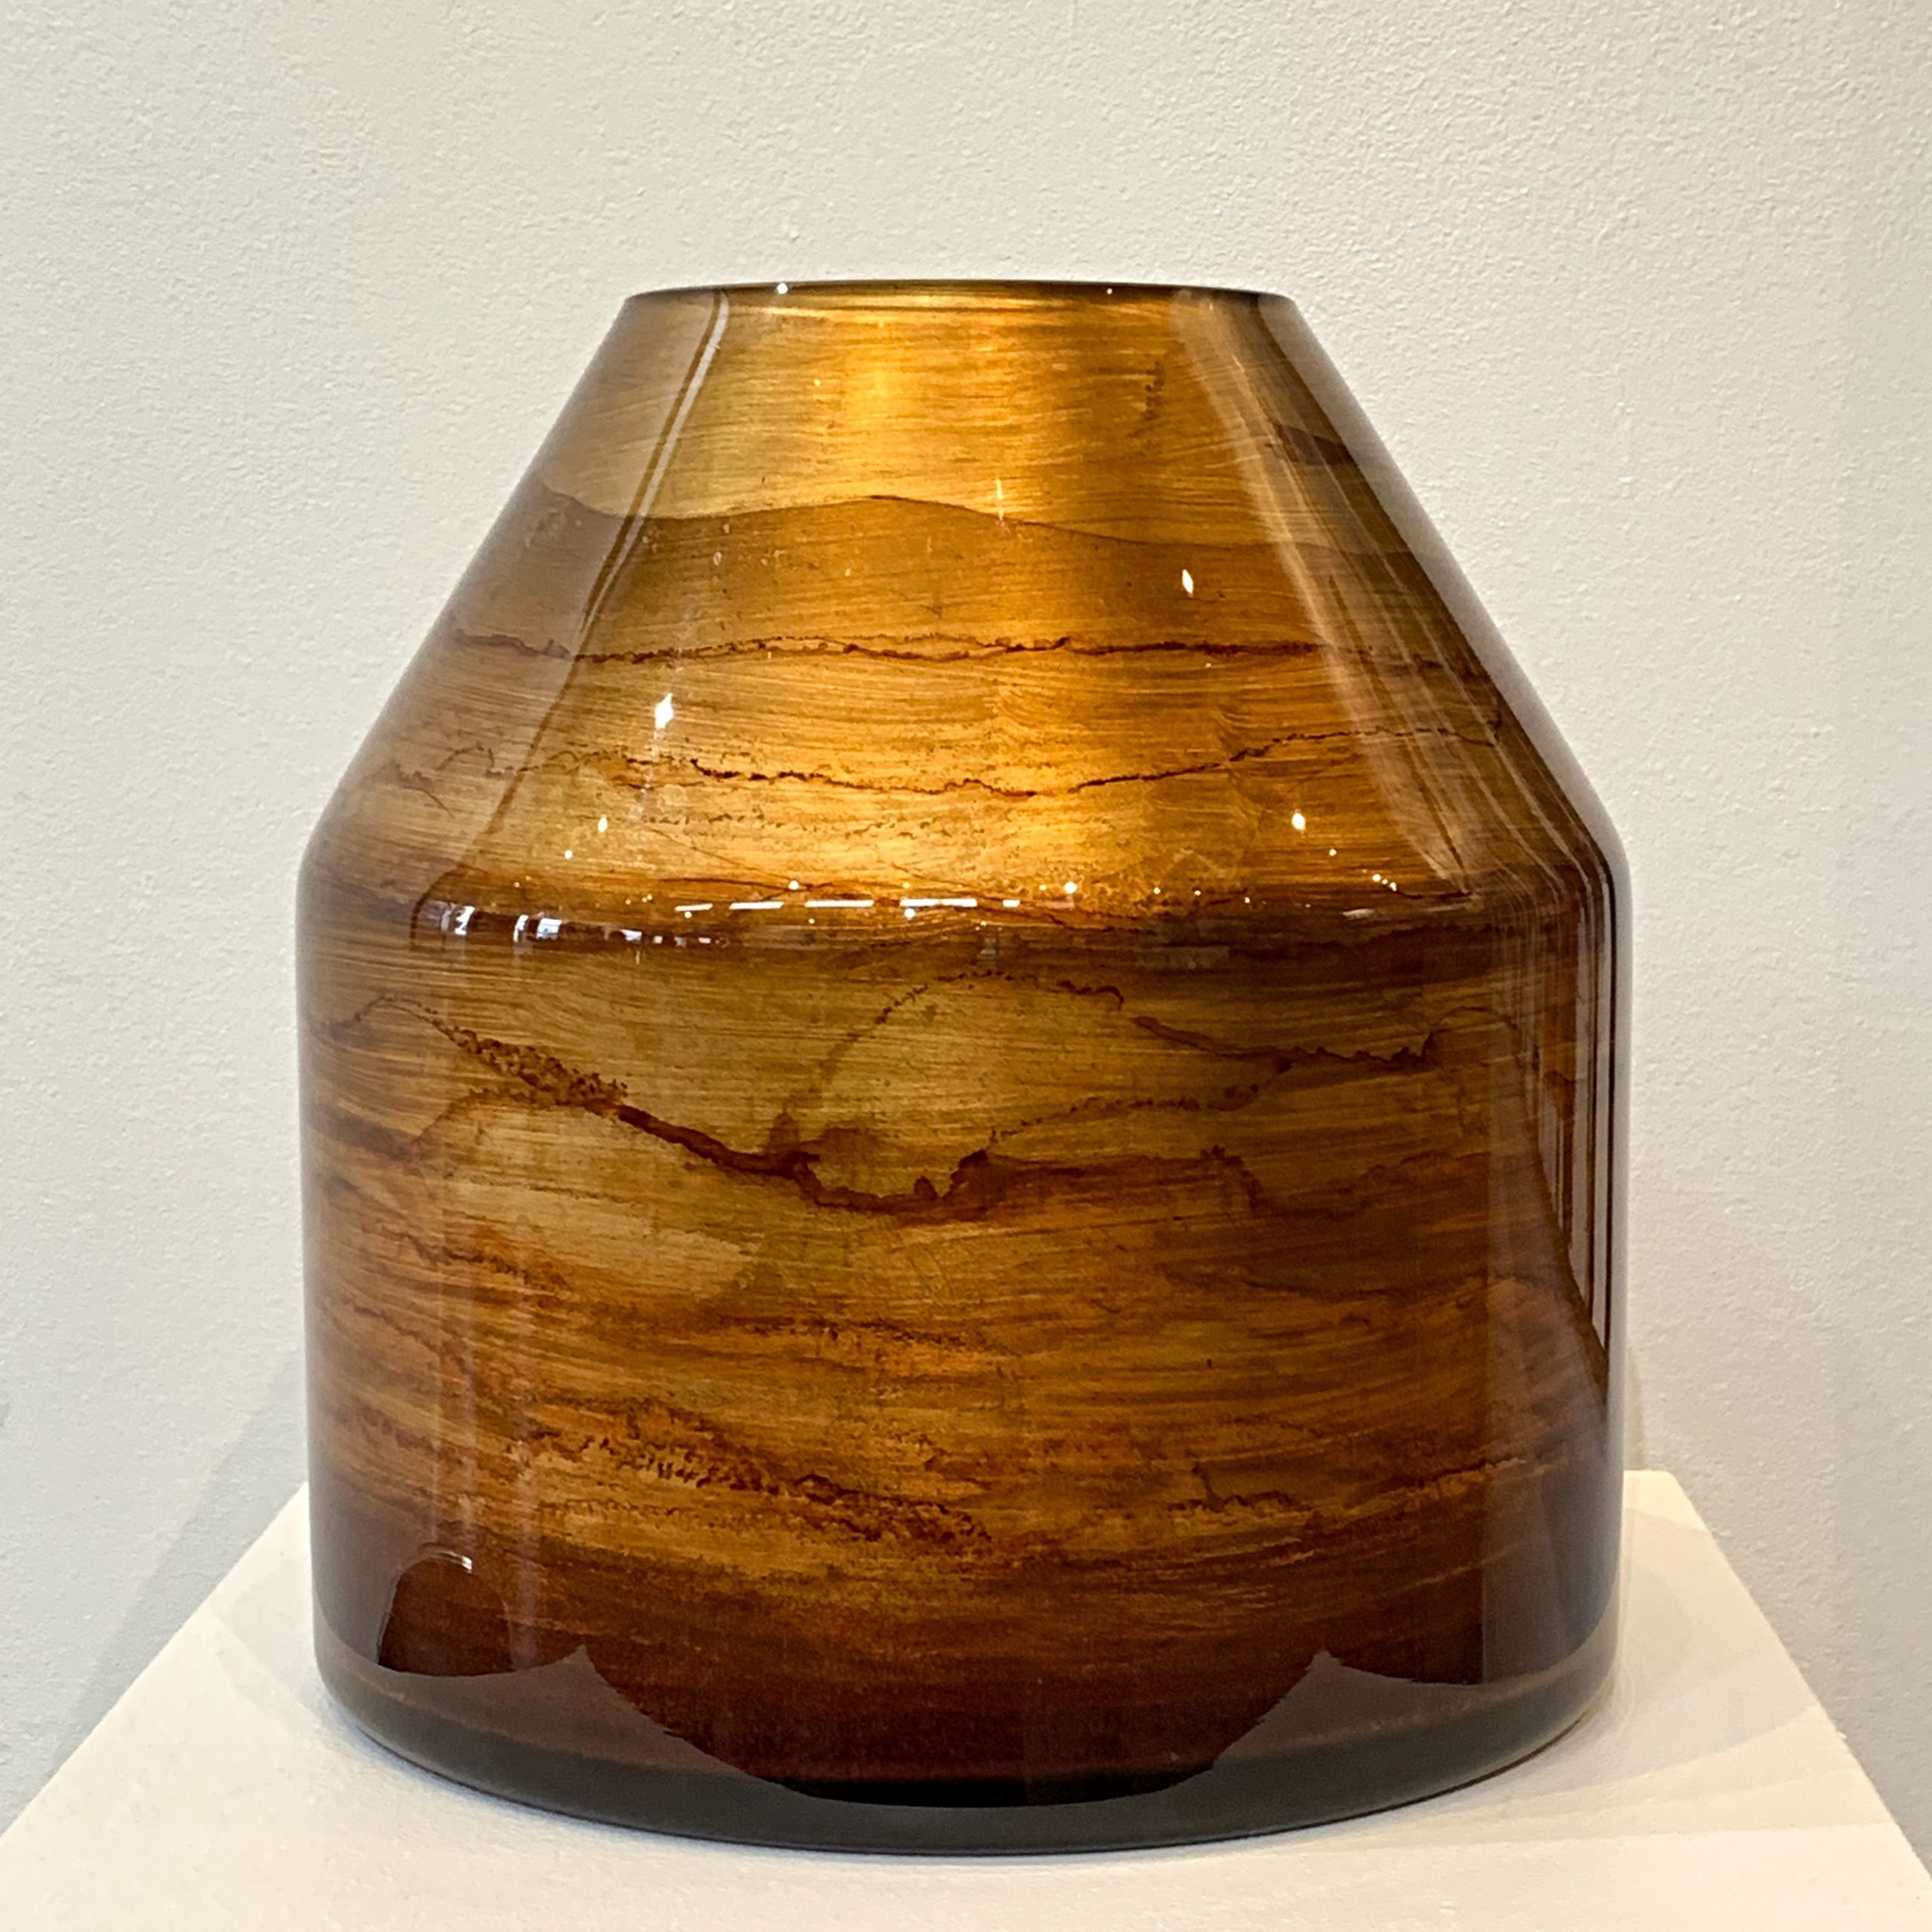 Large gold vase, hand gilded by David Graff | Effusion Art Gallery + Cast Glass Studio, Invermere BC